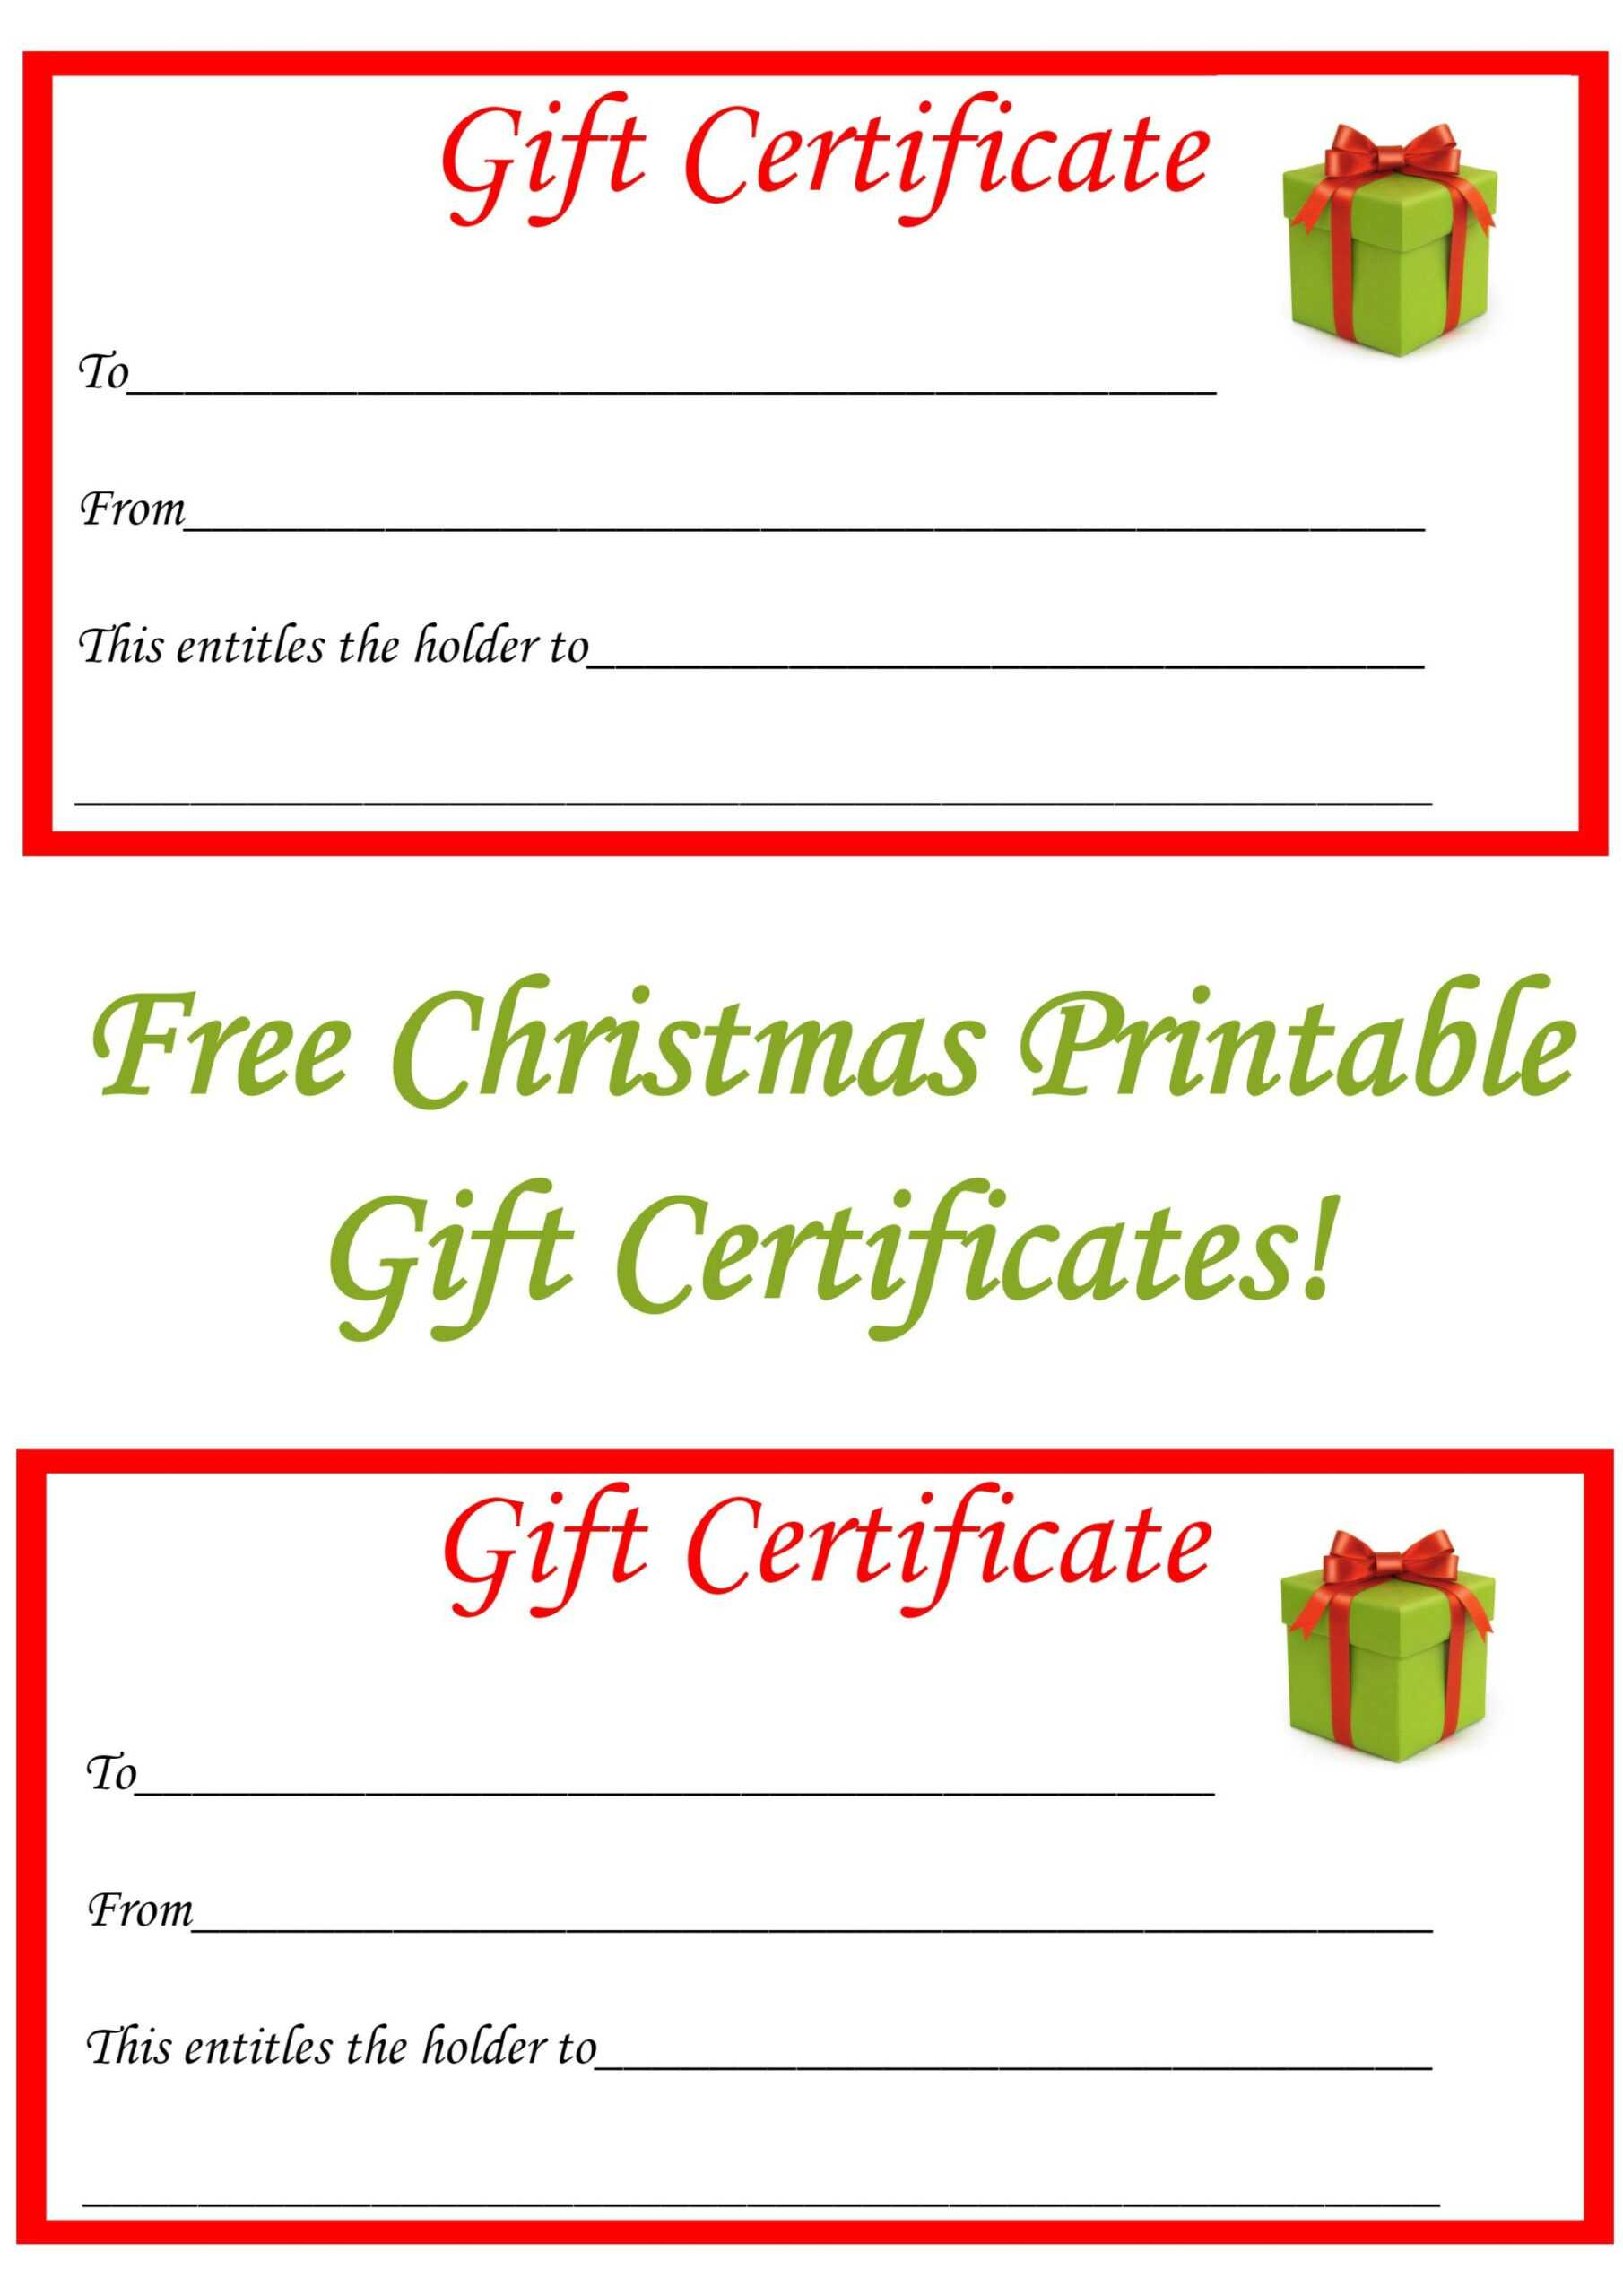 Free Printable Christmas Gift Certificate Template Throughout Christmas Gift Certificate Template Free Download